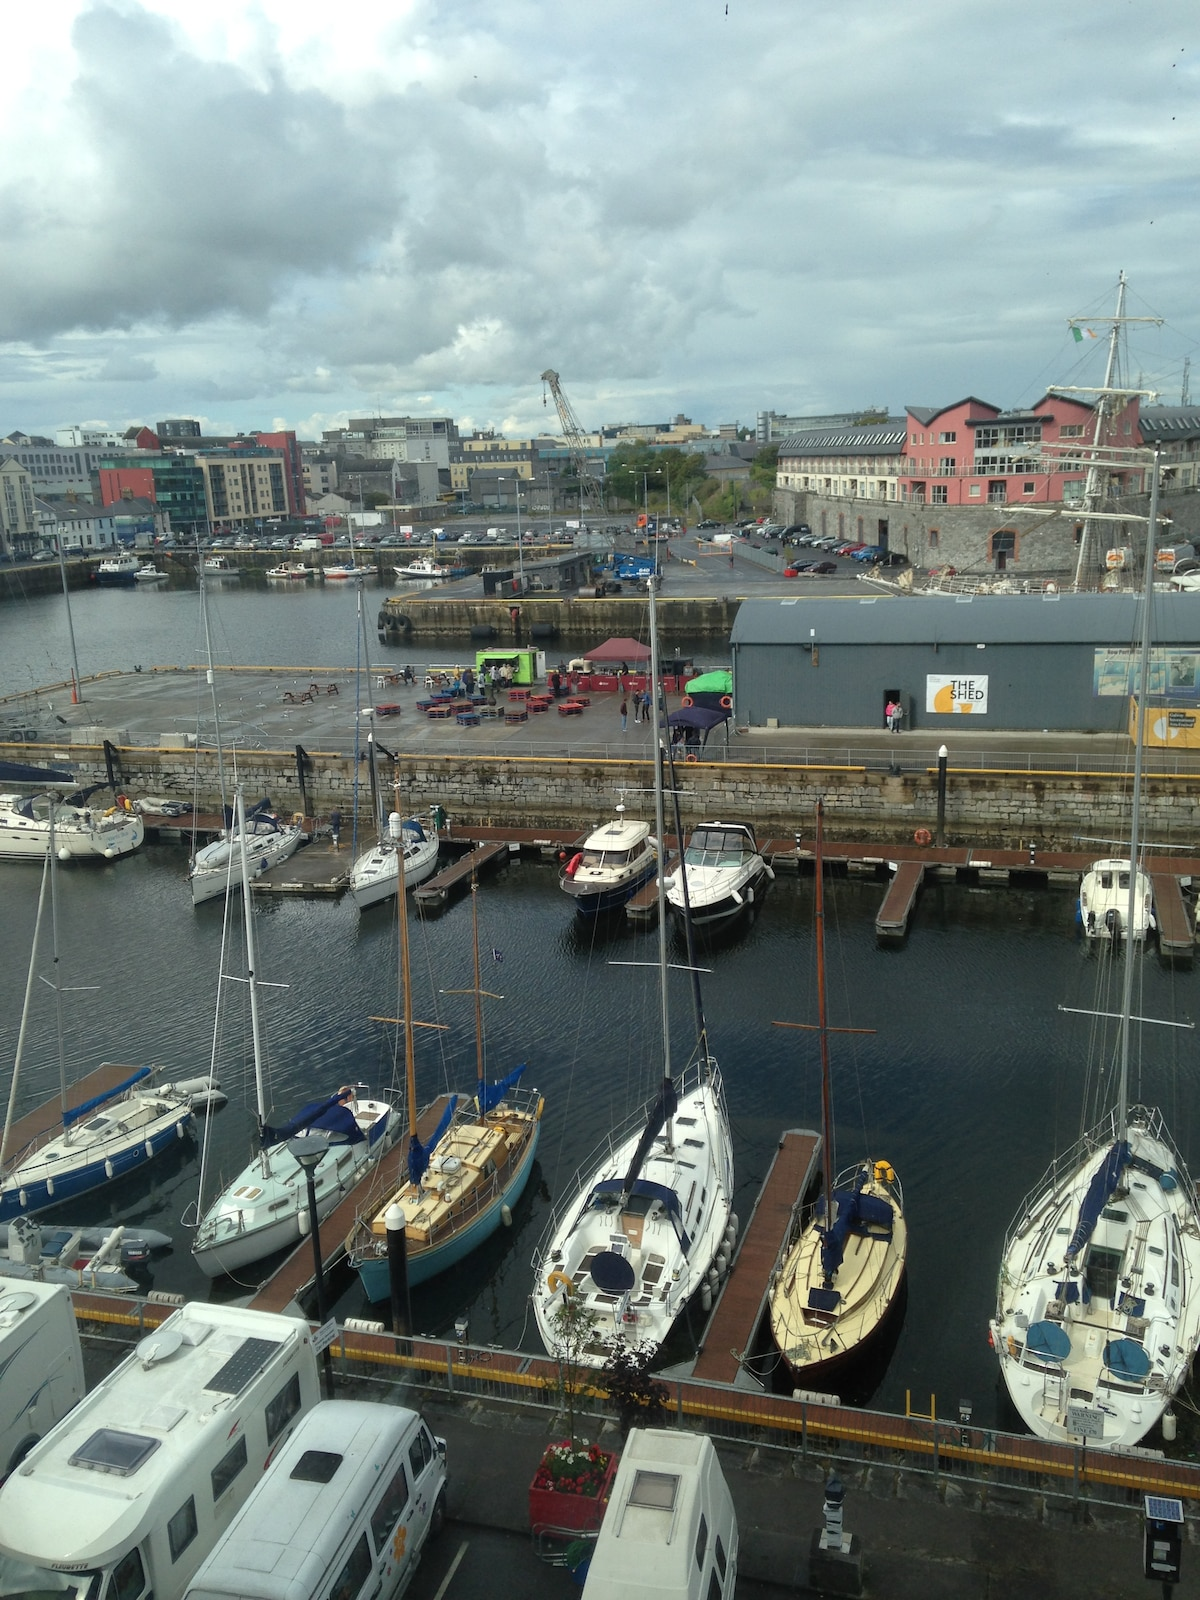 Galway City Center on The Docks